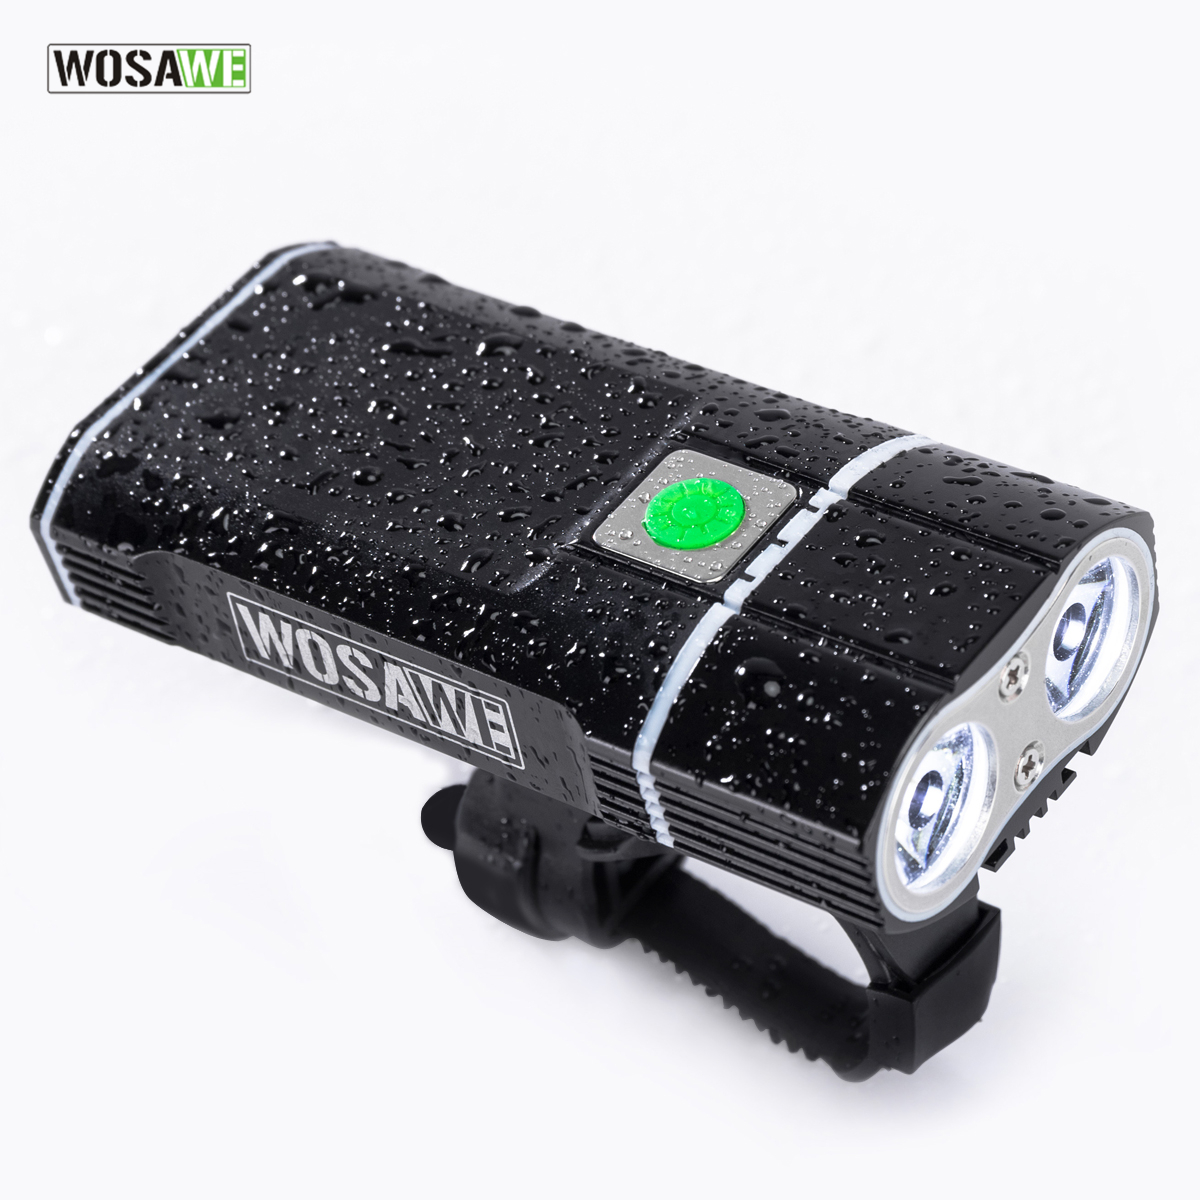 WOSAWE Bicycle-Light Rechargeable Led-Lamp Built-In-Batteries Lumens 18650 with USB 2-XML title=